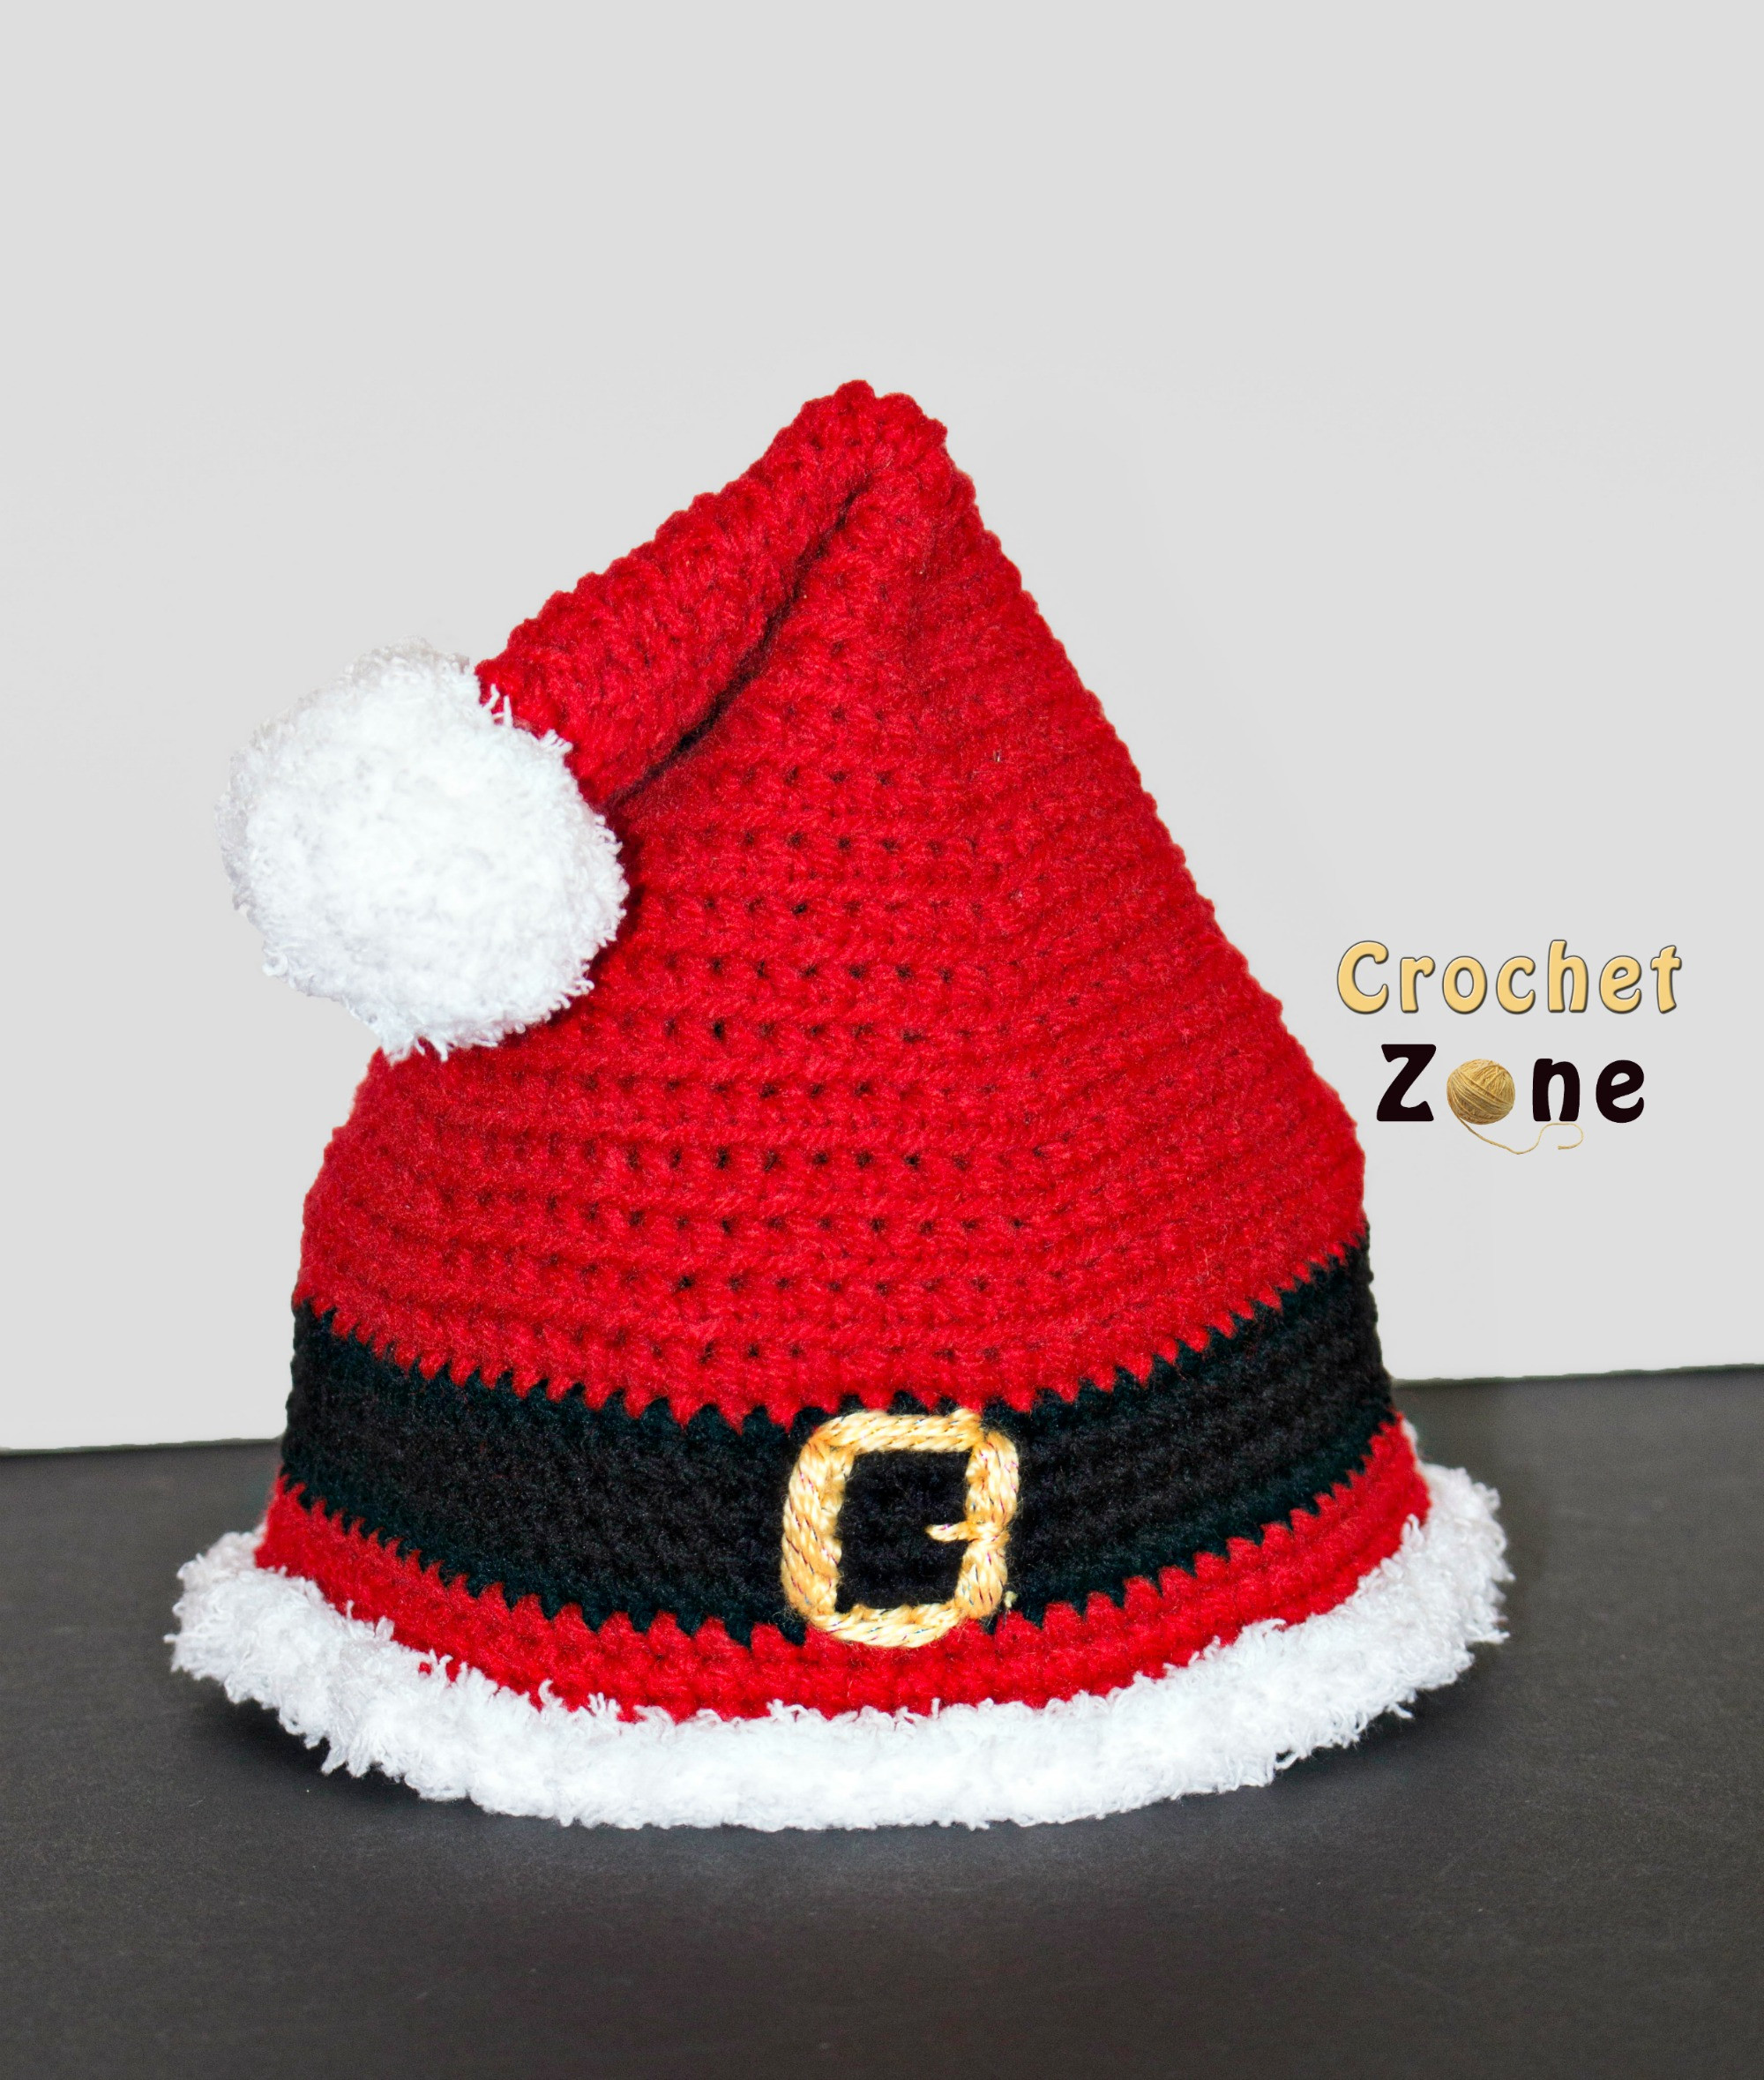 Fresh Crochet Zone All Things Crochet Santa Hat Pattern Of Awesome Items Similar to Knitting Pattern Santa Christmas Hat or Santa Hat Pattern